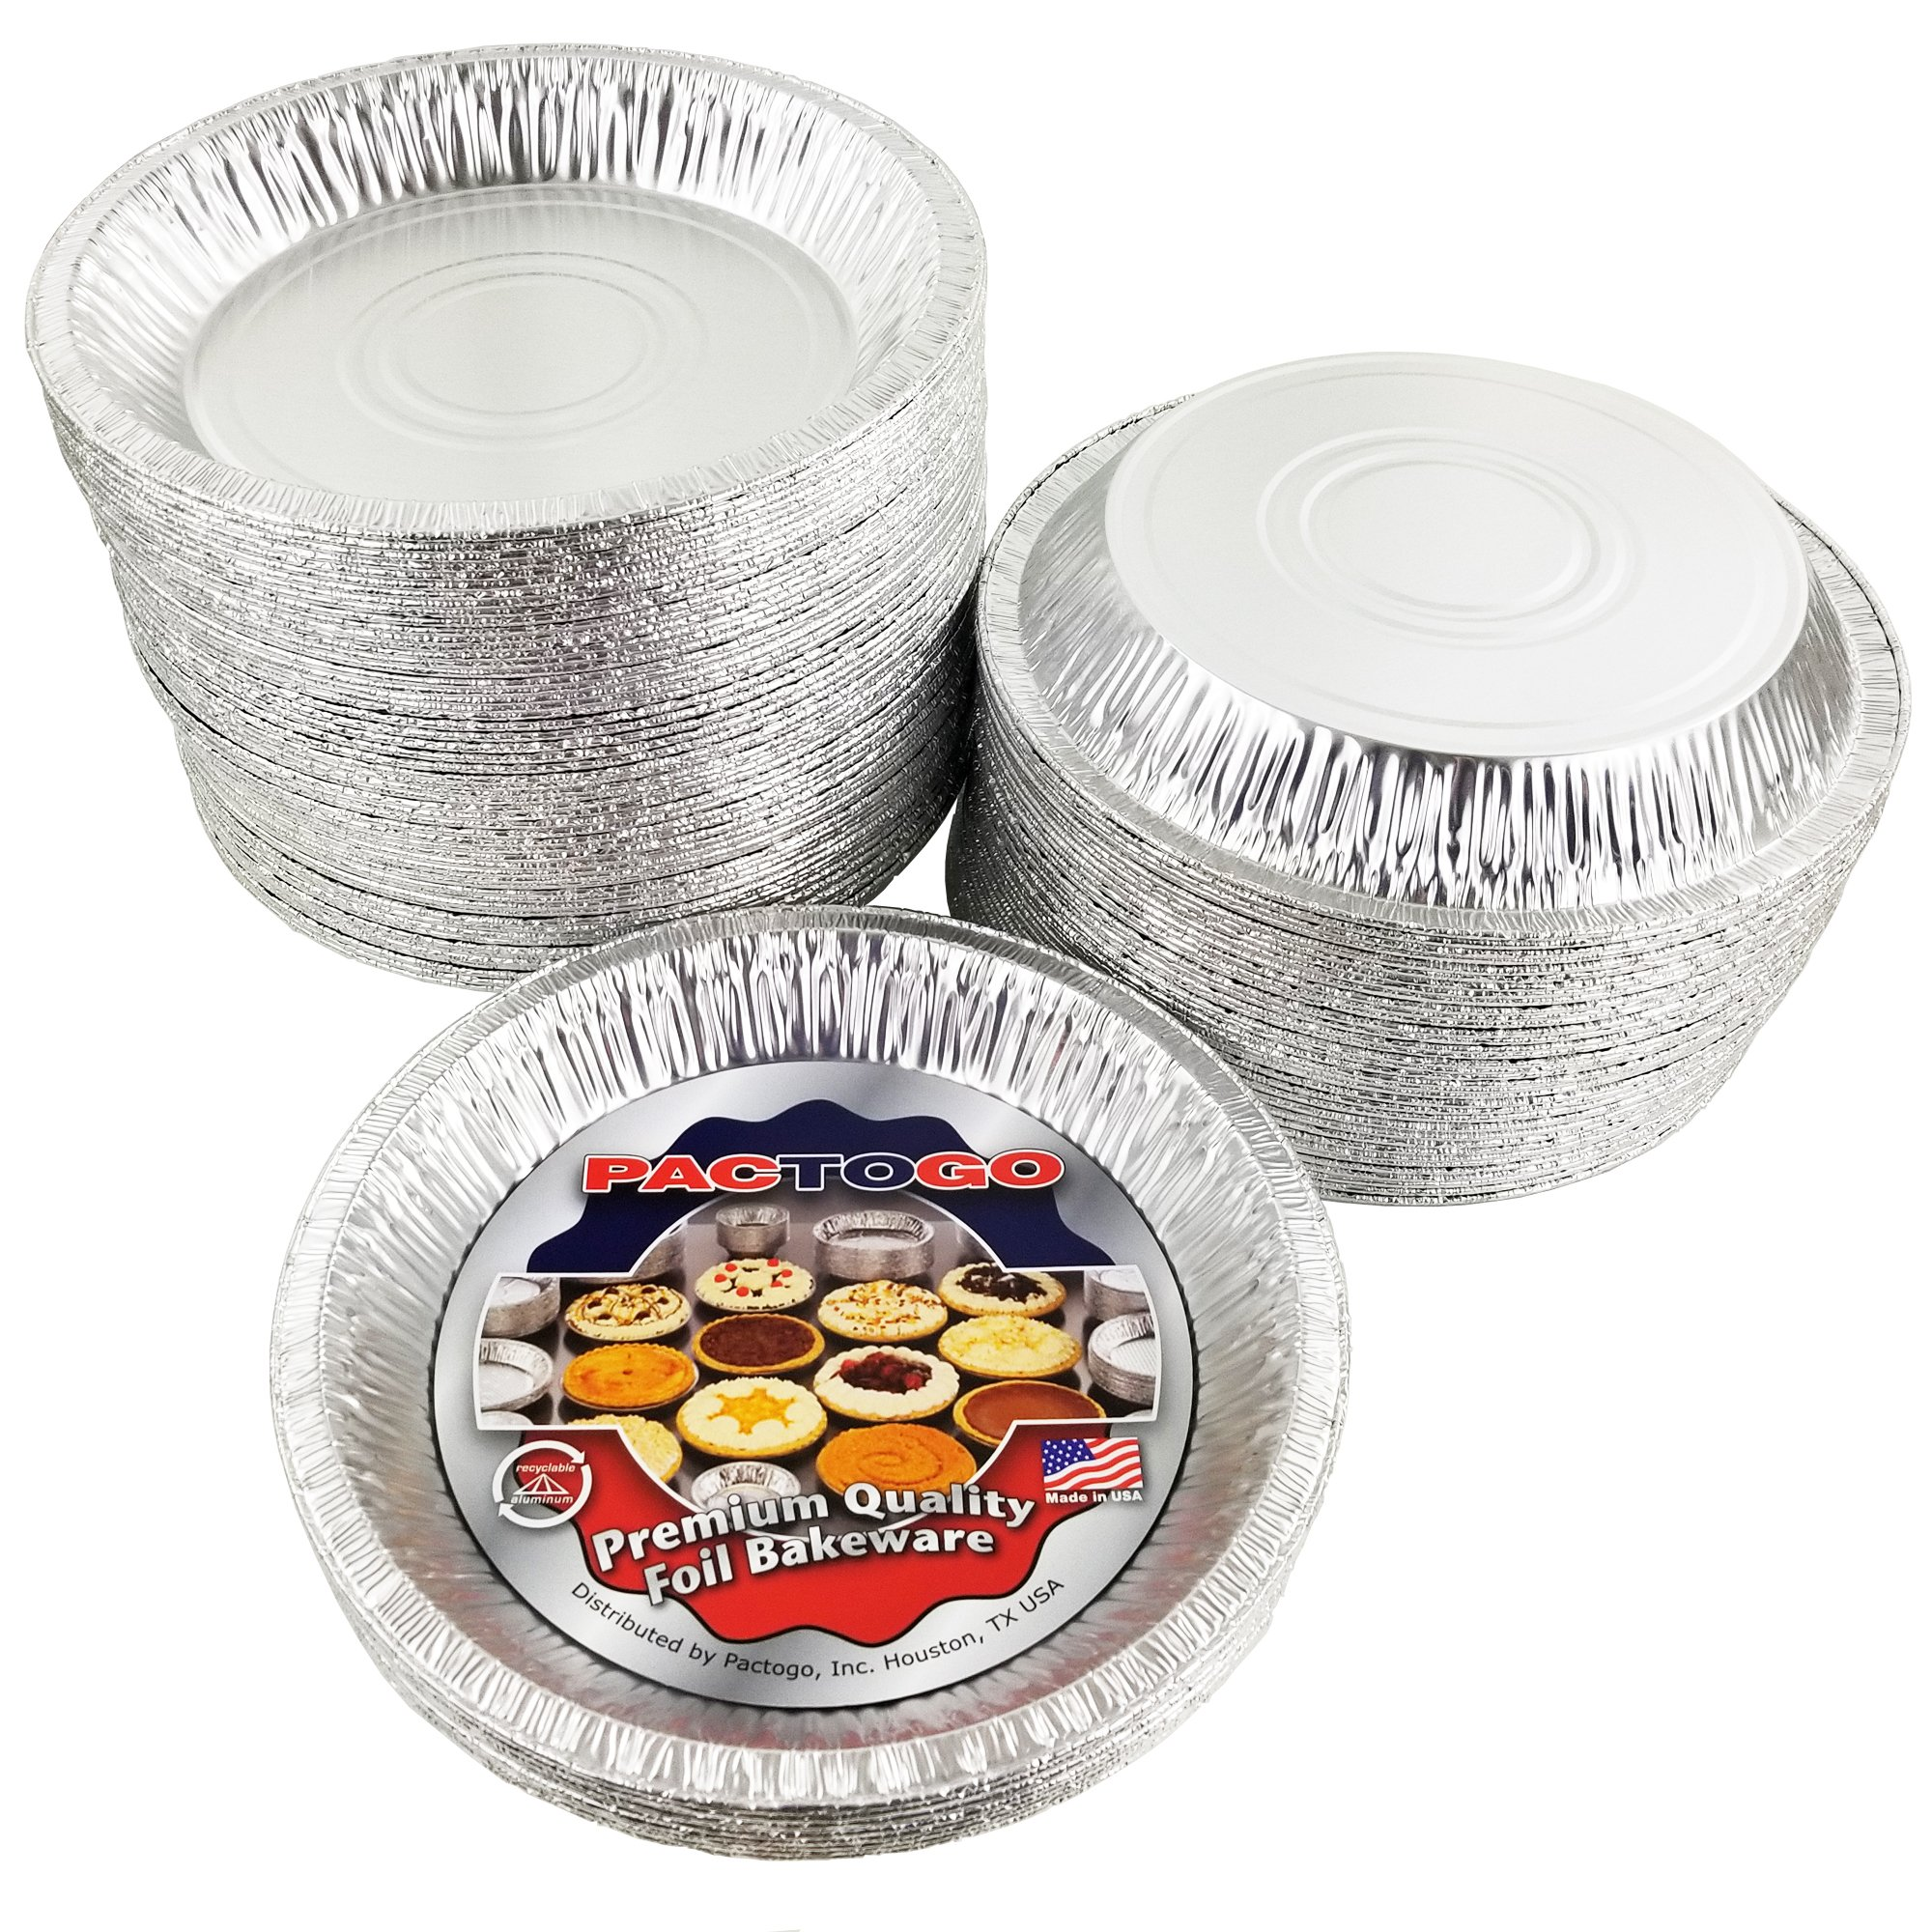 Pactogo Aluminum Foil Pie Pan (Actual Top-Out 9-5/8 Inches - Top-In 8-3/4 Inches - Vertical Depth 1-3/16 Inches) - Disposable Baking Tin Plates (Pack of 100) by PACTOGO (Image #5)